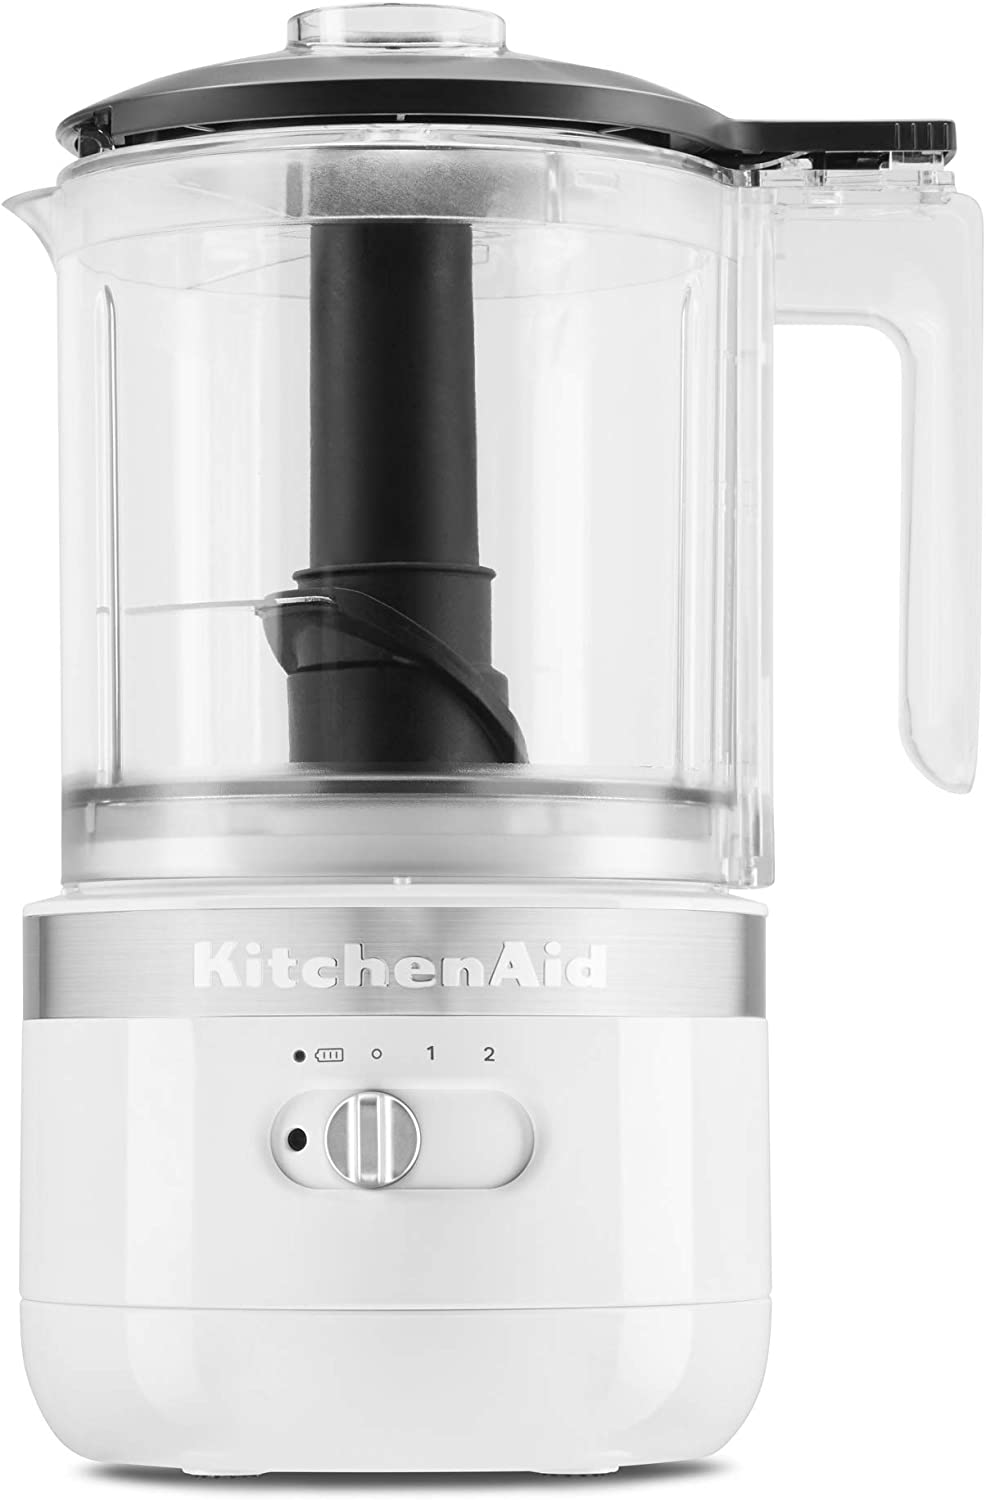 KitchenAid KFCB519WH Cordless Chopper, 5 cup, White